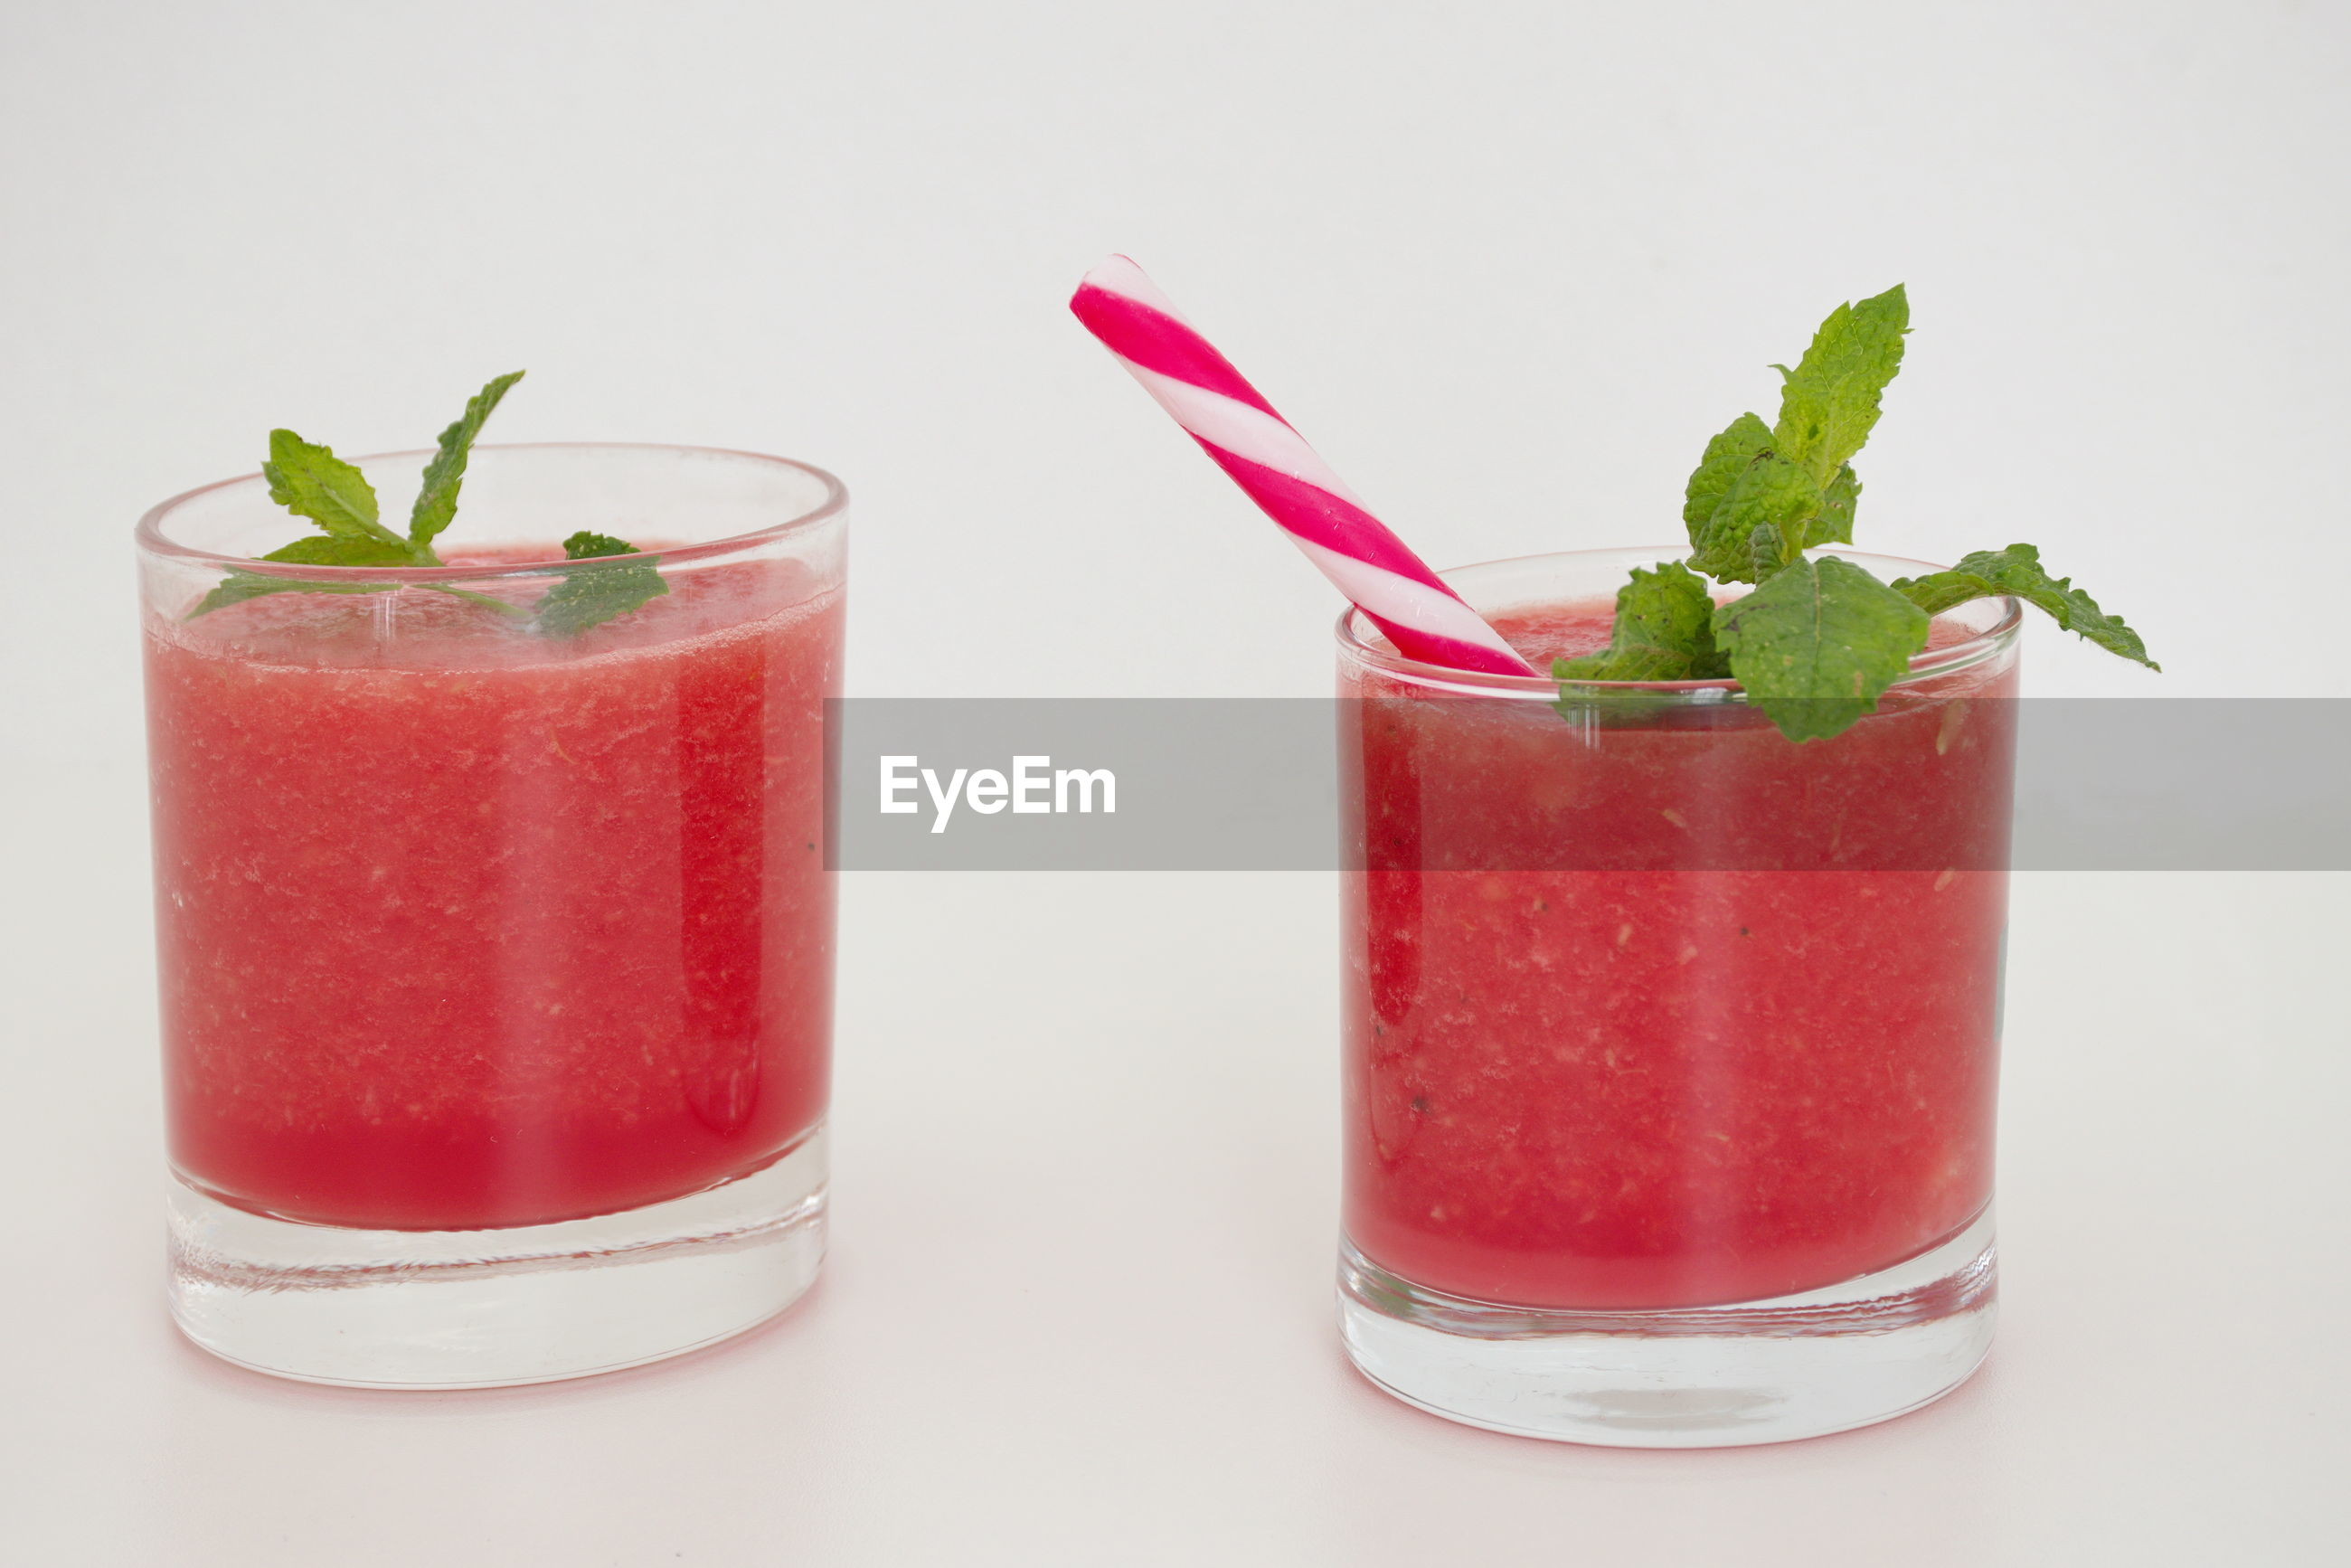 Smoothie of watermelon with mint leaves against the white background